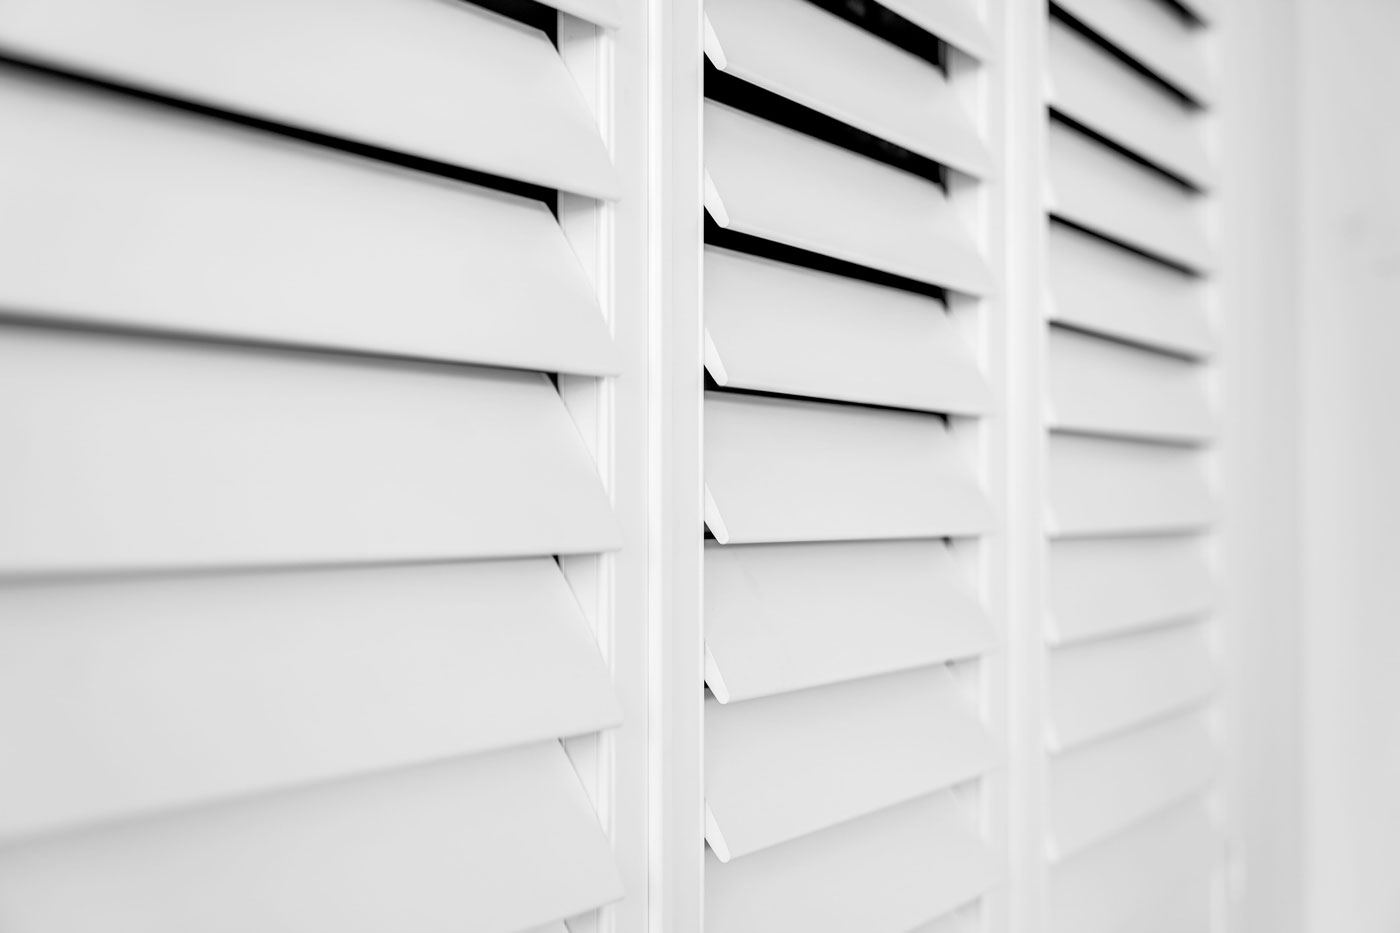 Window Shutters Nz Build Custom Shutters Nz Blinds